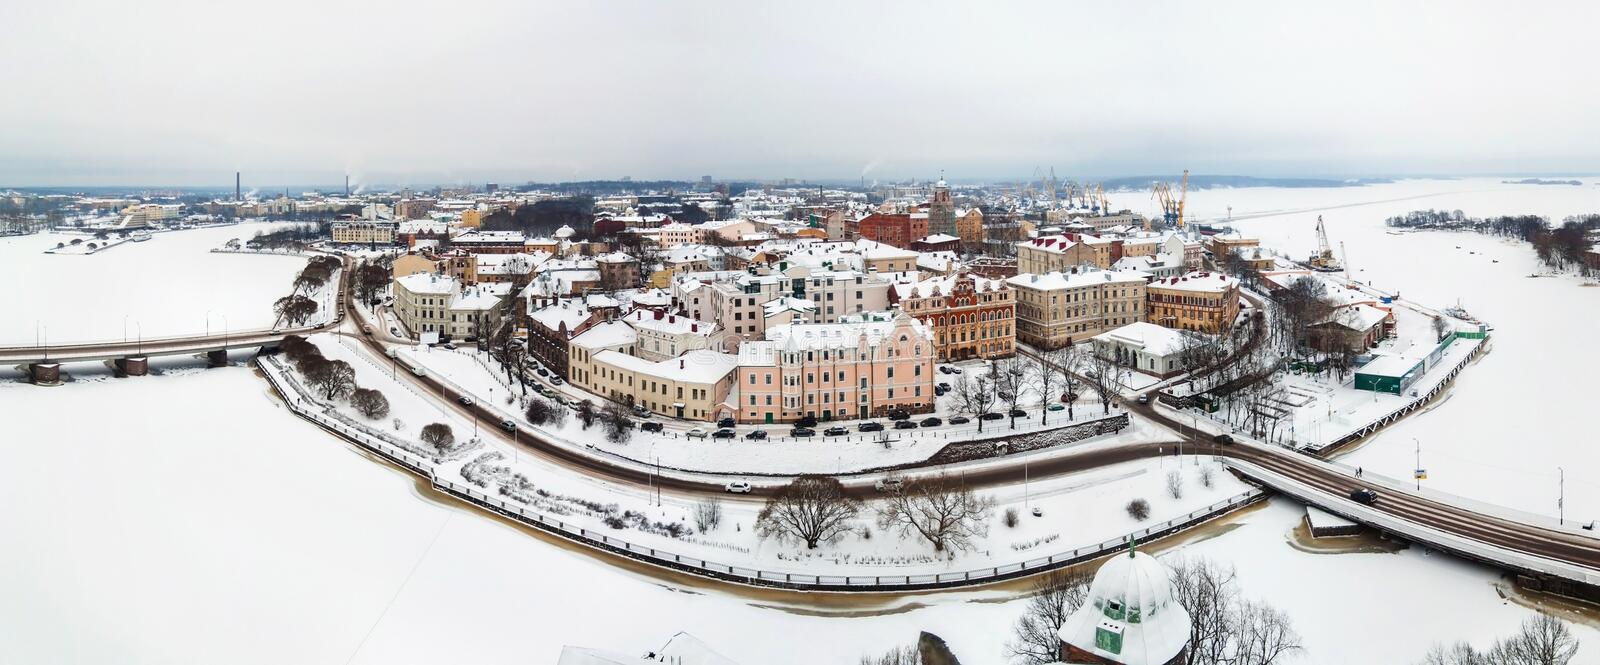 Panorama van oude stad in de winter Vyborg, Rusland royalty-vrije stock foto